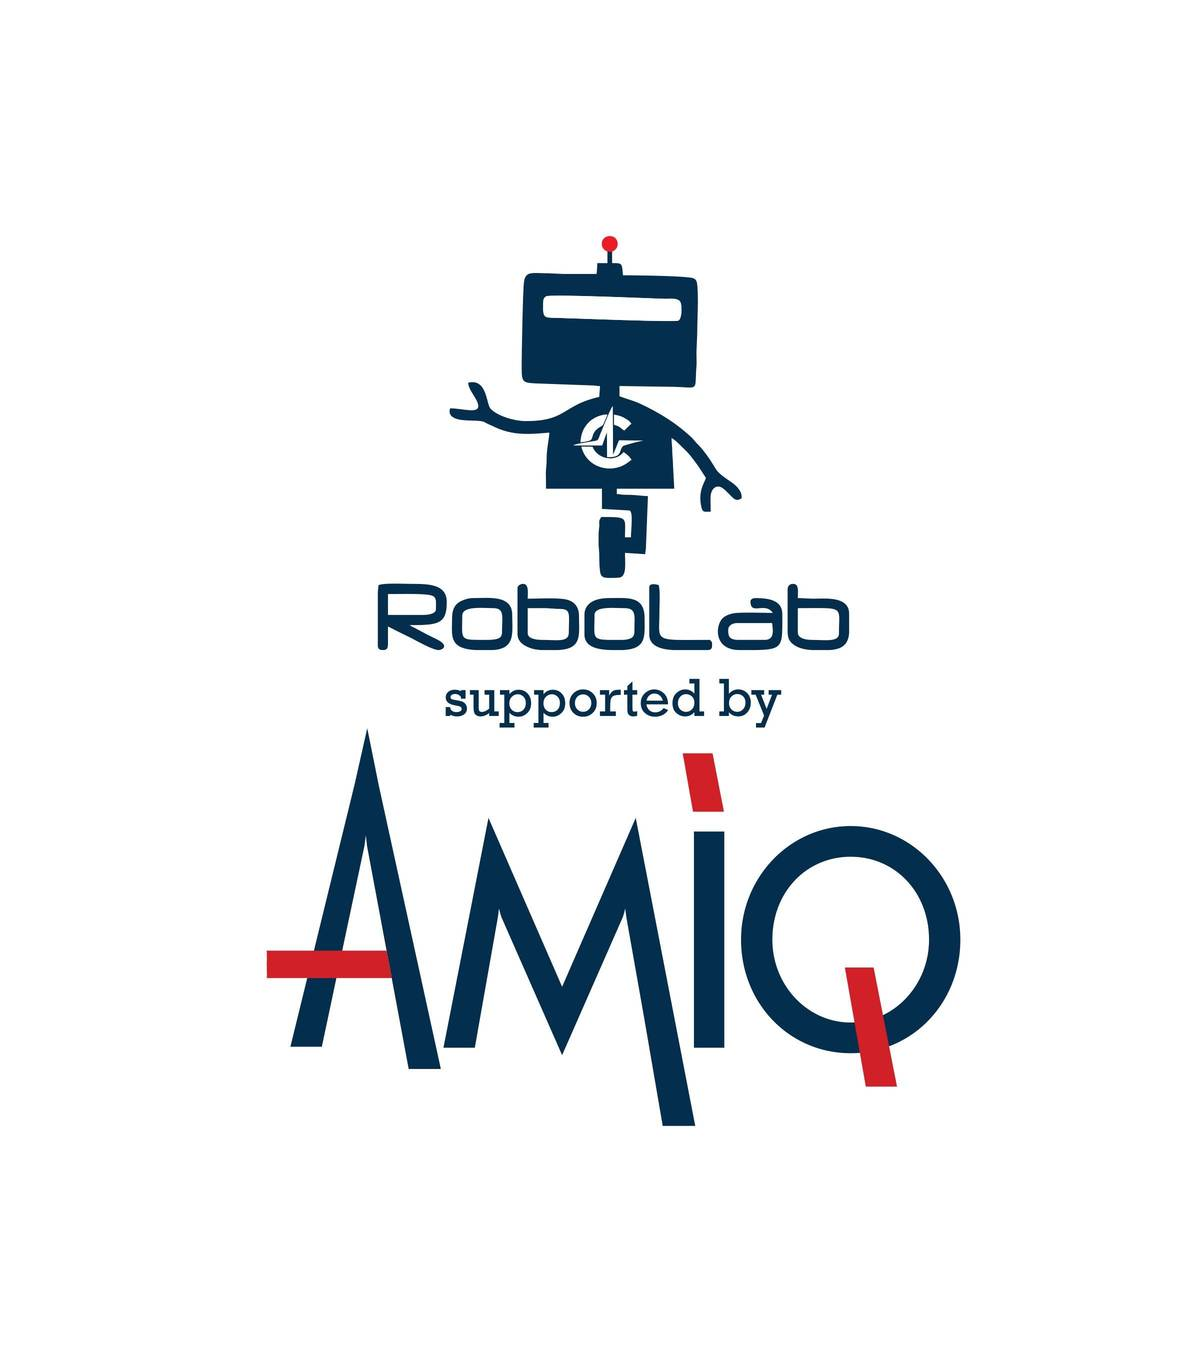 Robolab supported by AMIQ